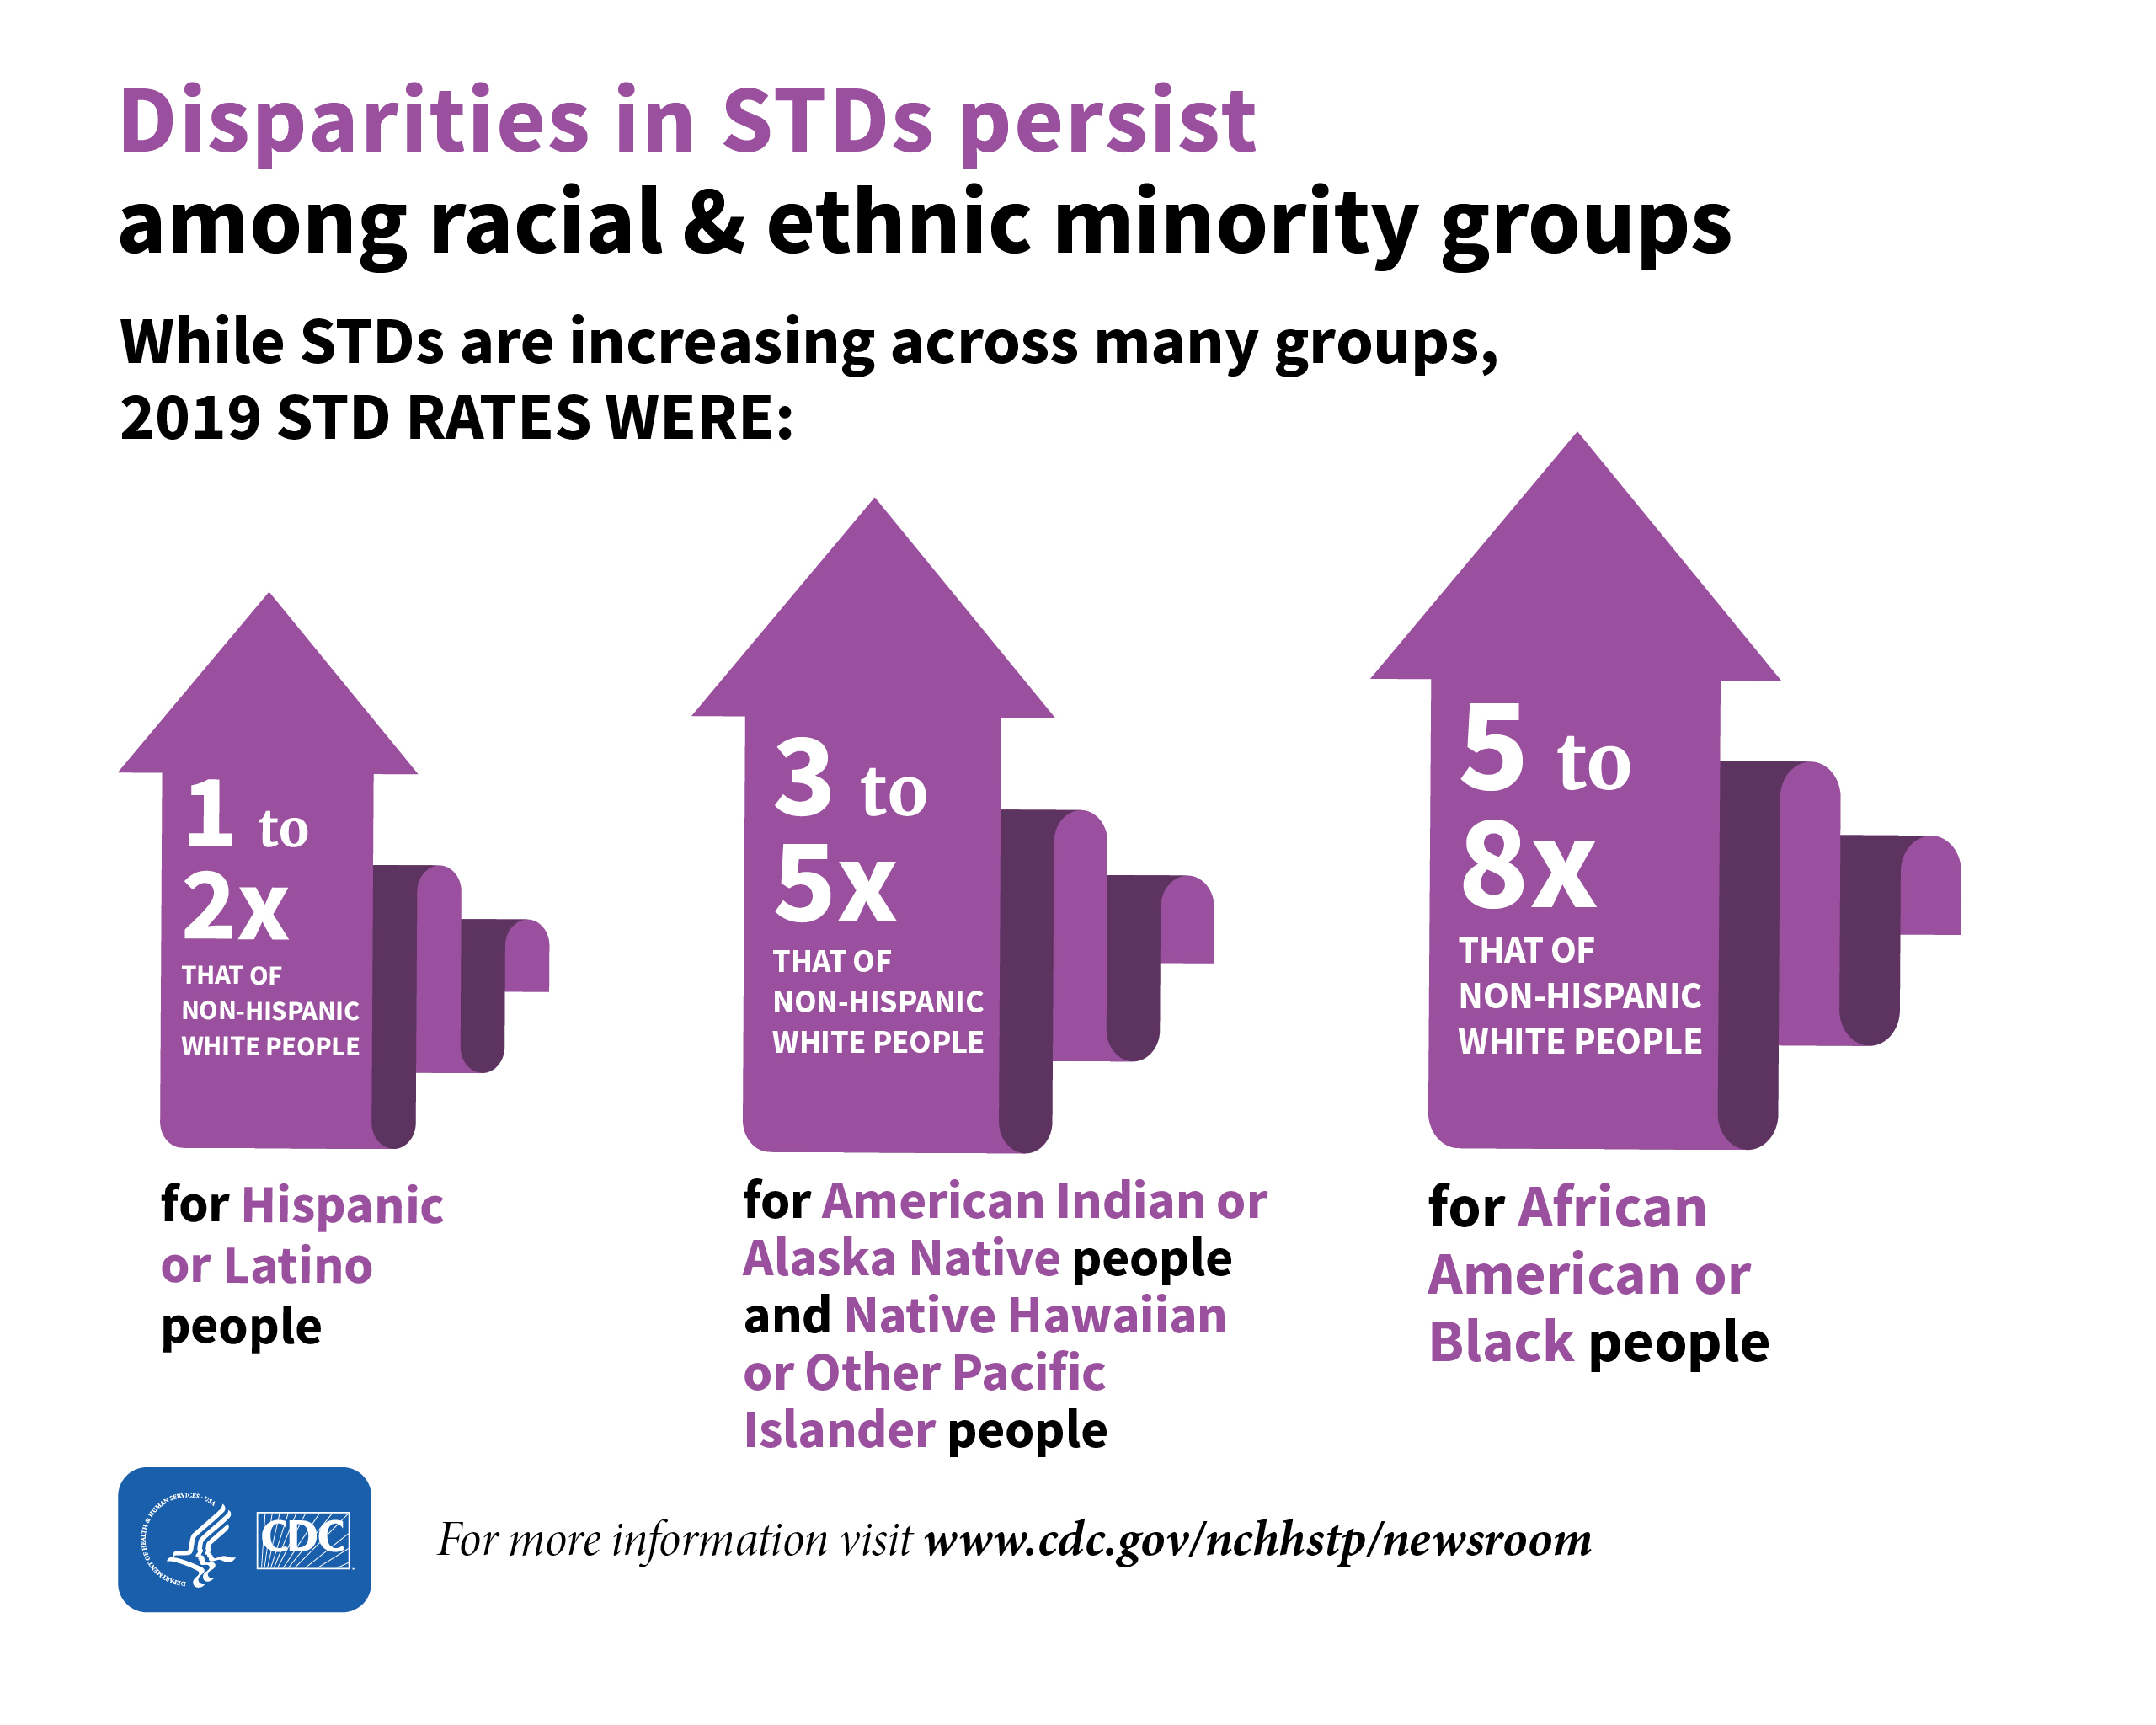 The graphic shows that while STDs are increasing across many groups, in 2019 disparities in STDs persisted among some racial and ethnic minority groups.  In 2019 STD rates for Hispanic or Latino people were 1-2 times that of non-Hispanic White people. In 2019 STD rates for American Indian or Alaska Native and Native Hawaiian or Other Pacific Islander people were 3-5 times that of non-Hispanic White people  In 2019 STD rates for African American or Black people were 5-8 times that of non-Hispanic White people